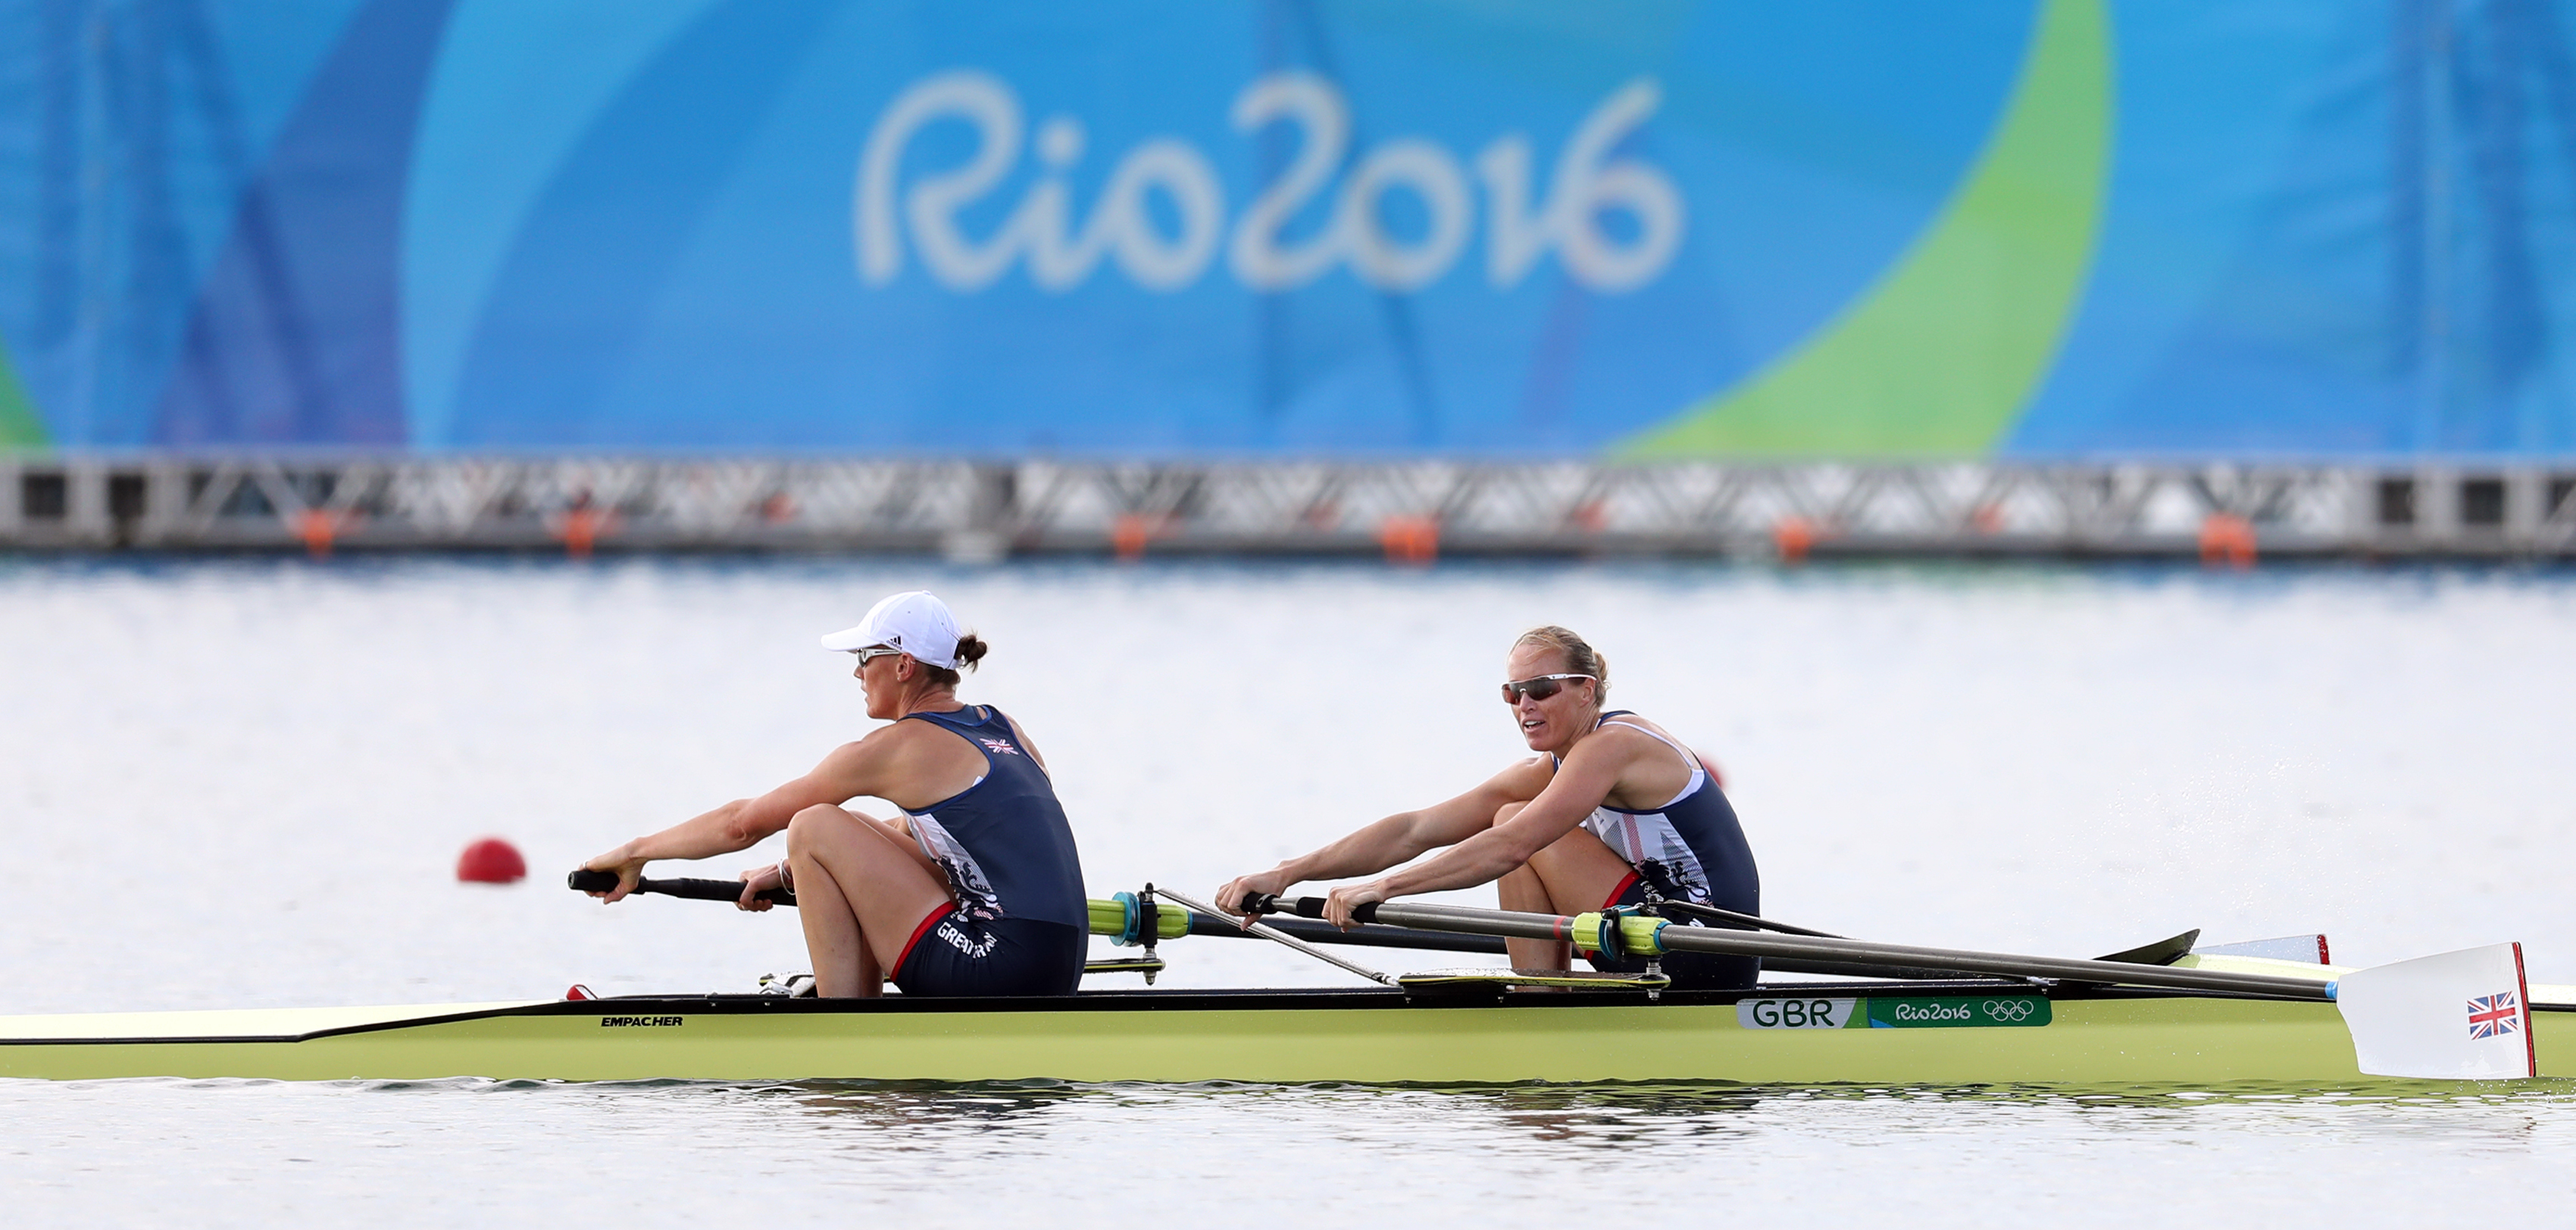 Helen Glover and Heather Stanning in the Women's Pair Semi Final at Rio 2016 (Martin Rickett/PA)